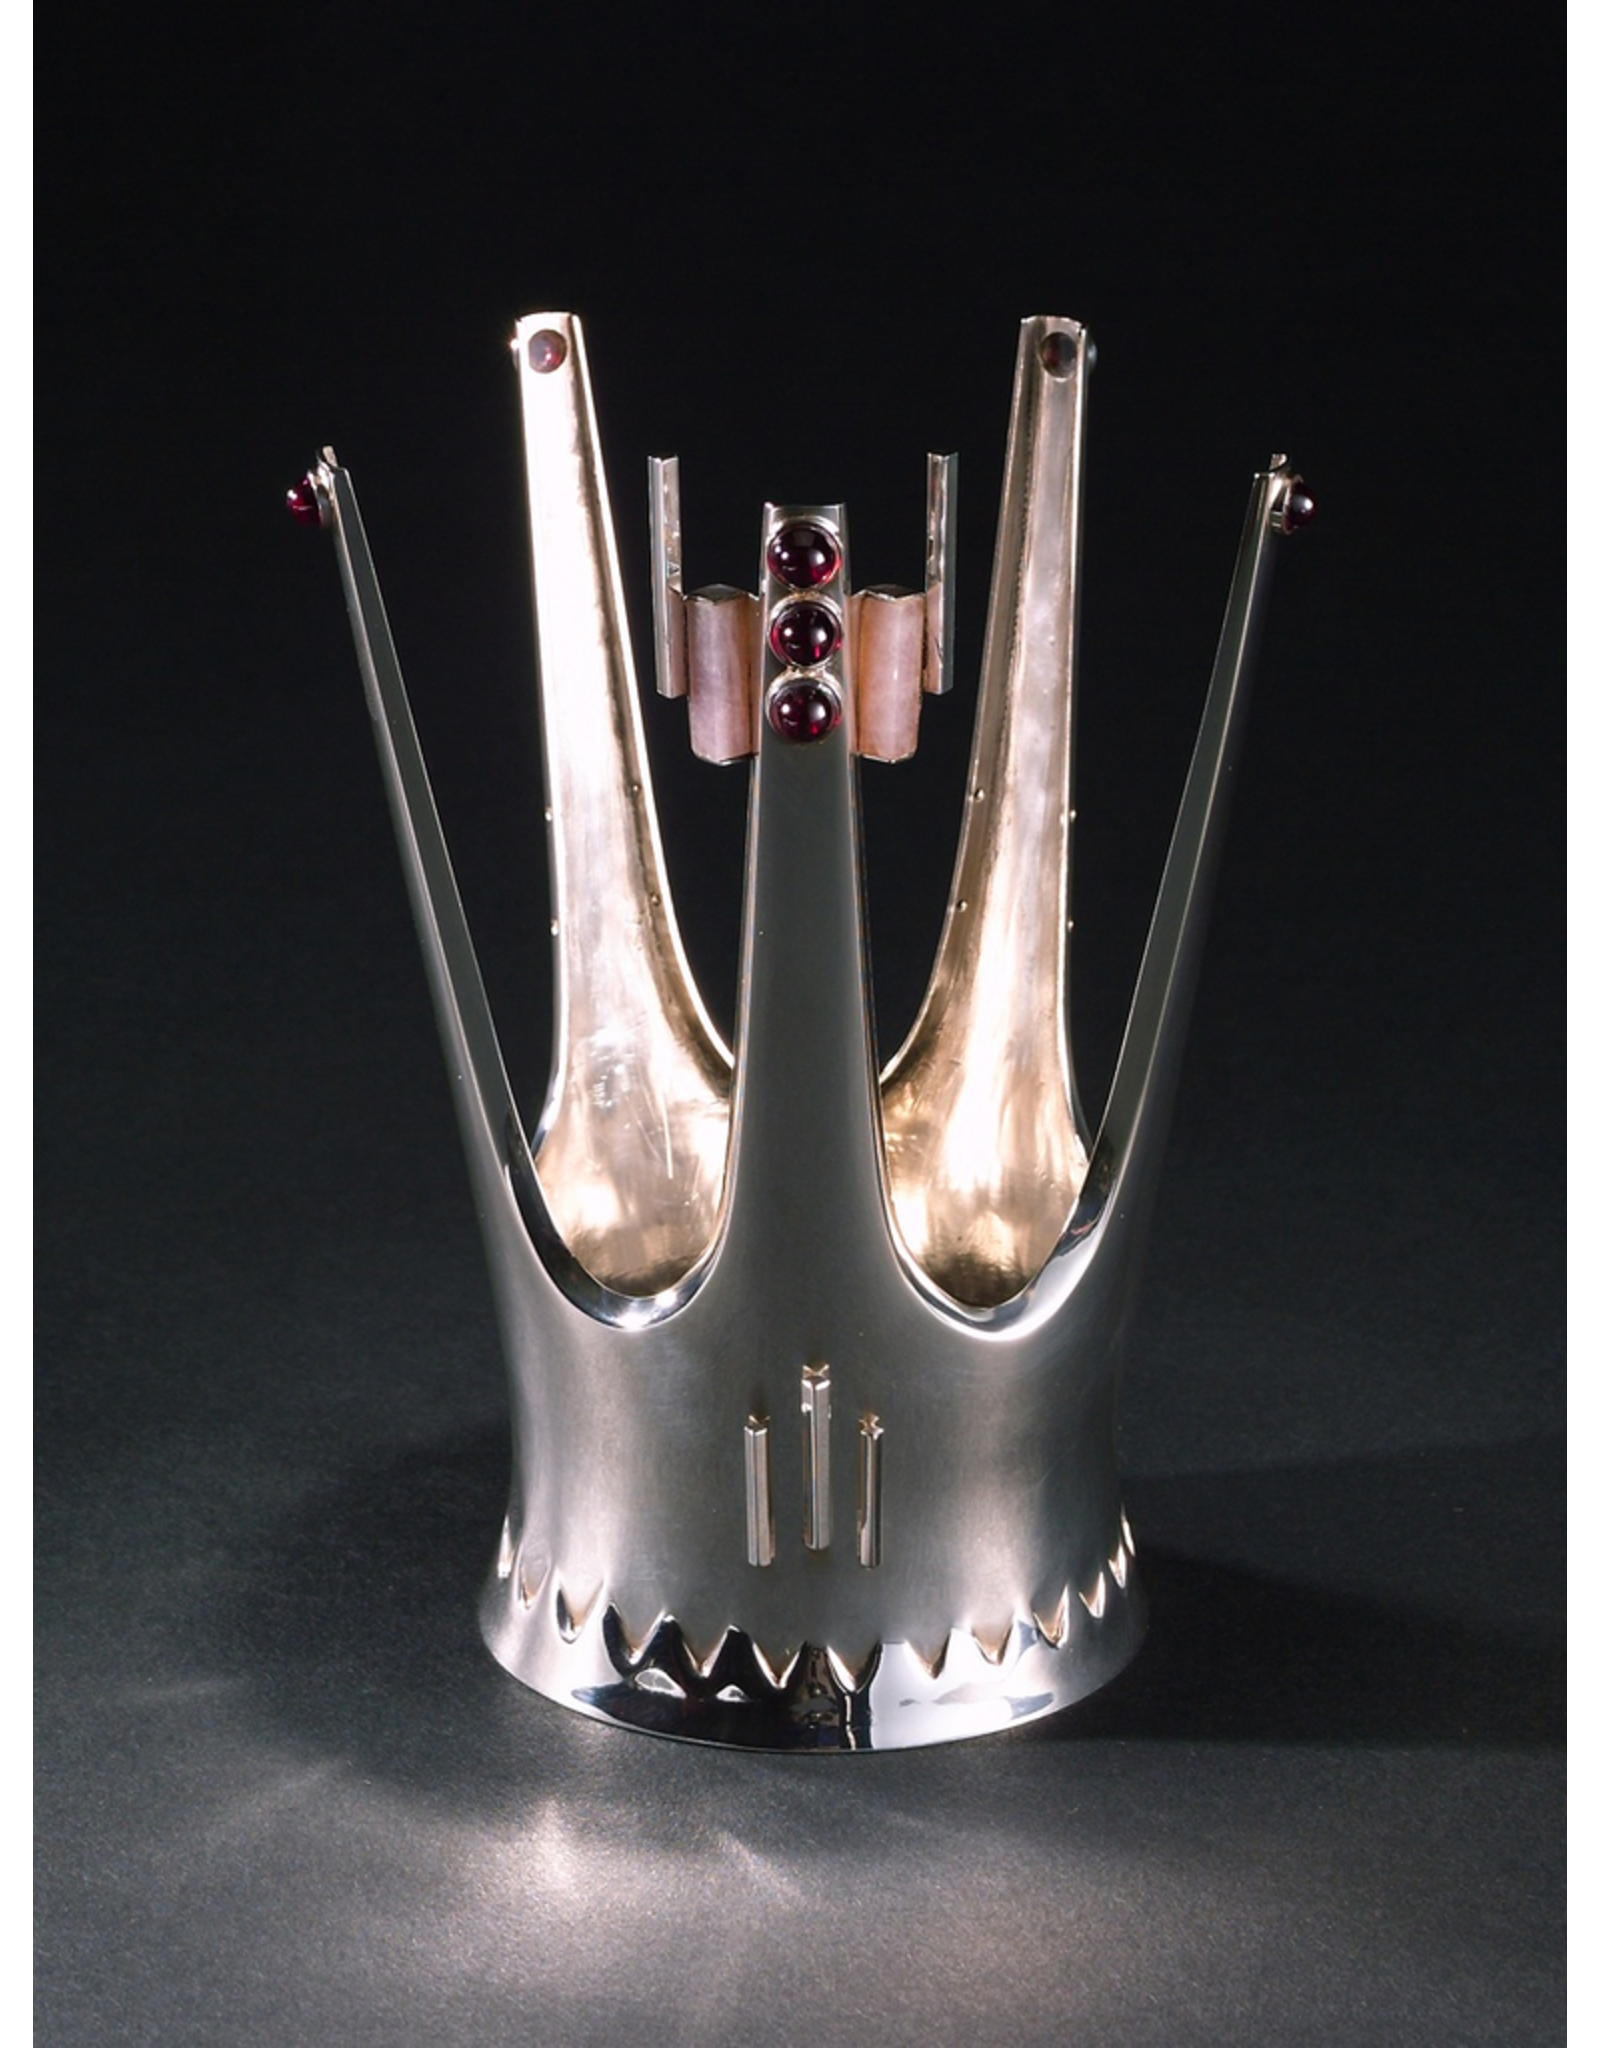 MANKS ANTIQUES FIVE-PRONGED SILVER BRIDAL CROWN